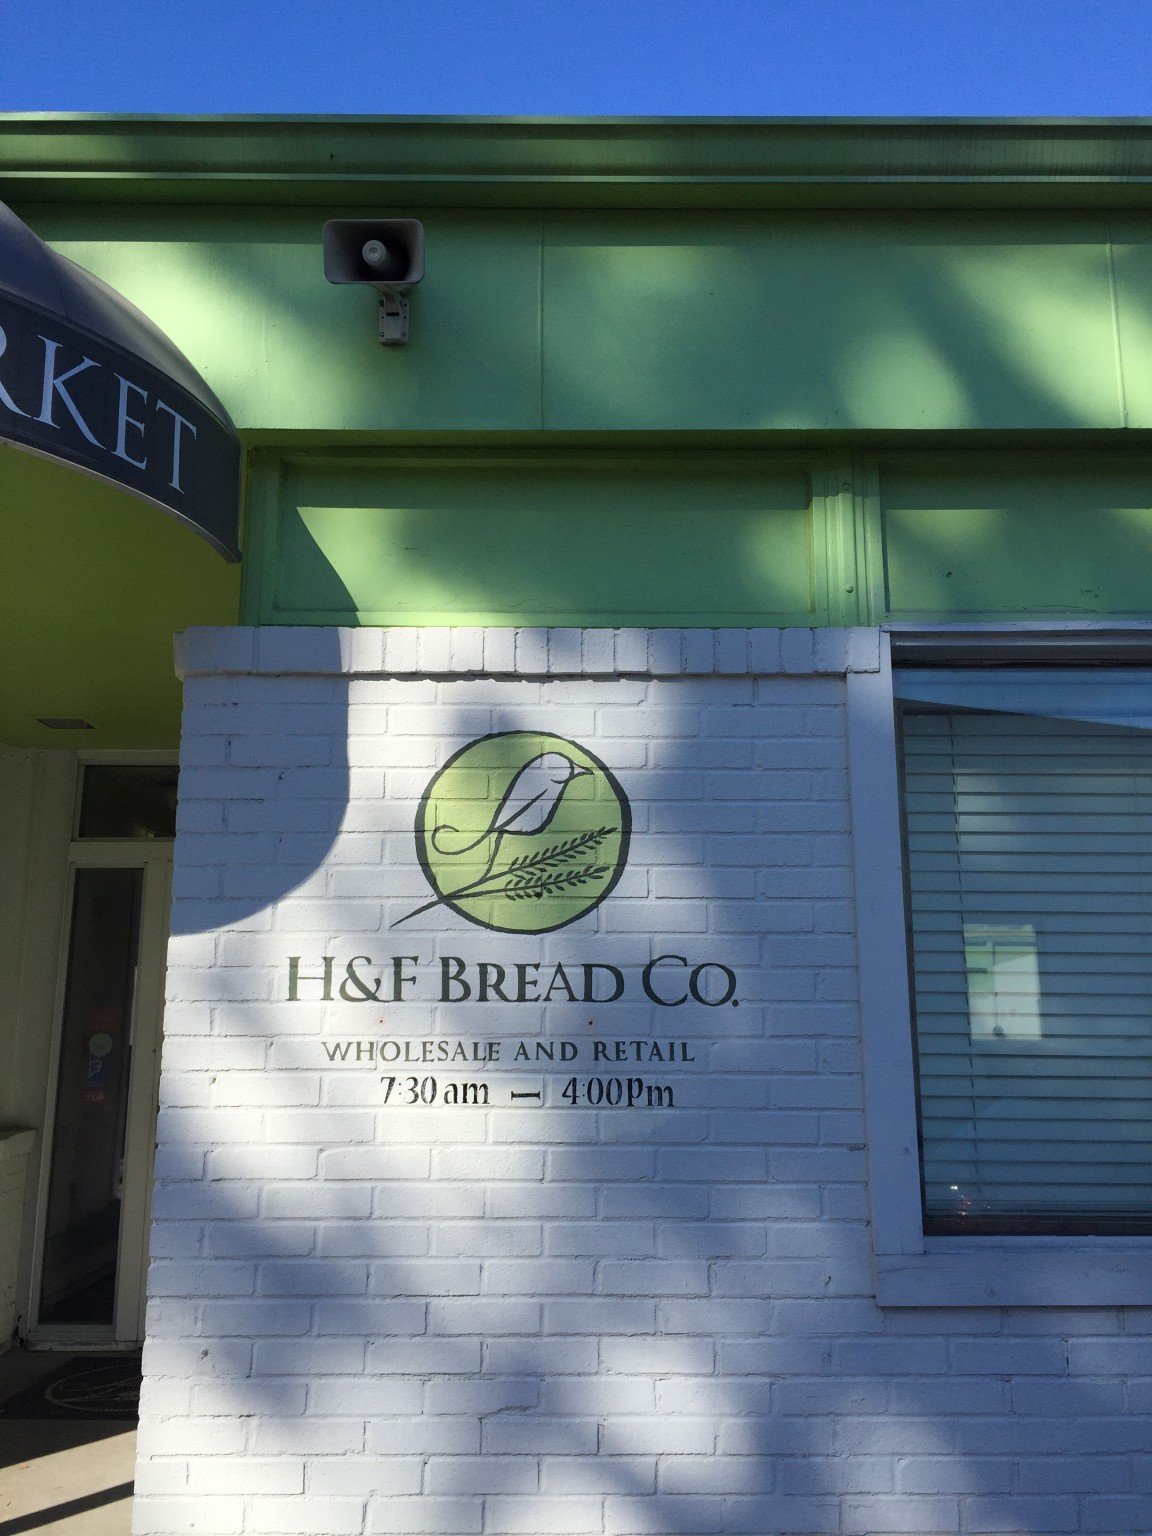 The current H&F Bread Co. location.